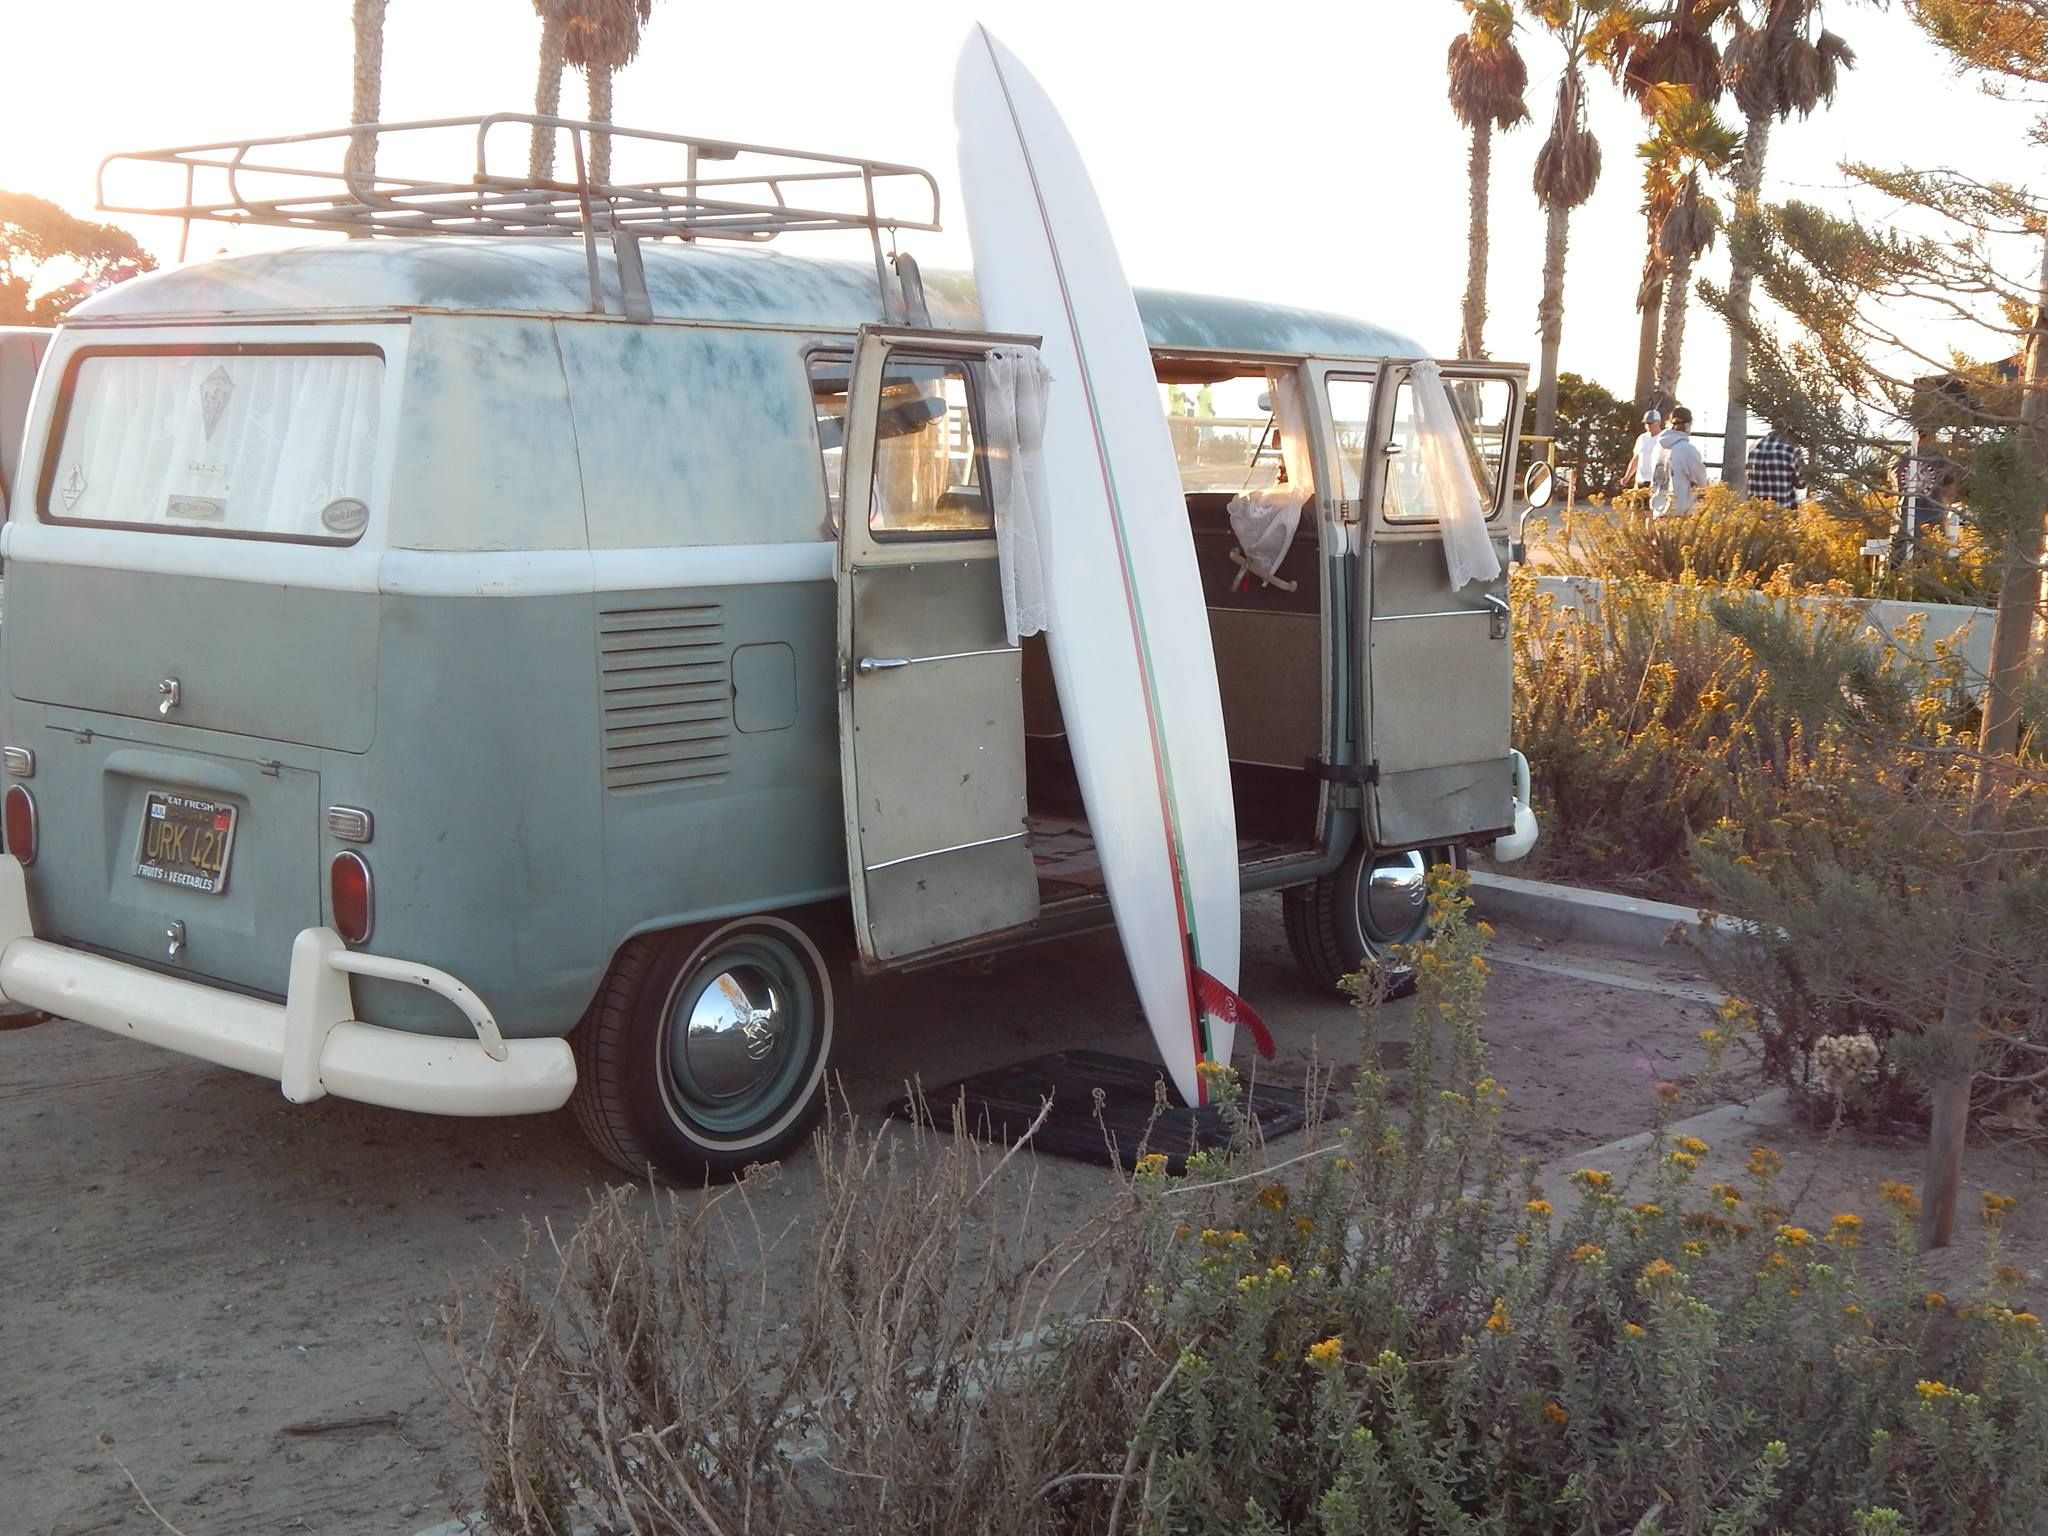 I was at the beach the other day with my Nellie, and an older gentleman stopped to chat. He described a Doormobile he owned back in the Sixties. So cool! I love to here stories people stop and tell me about their VWs! ♠ pinned by http://www.waterfront-properties.com/